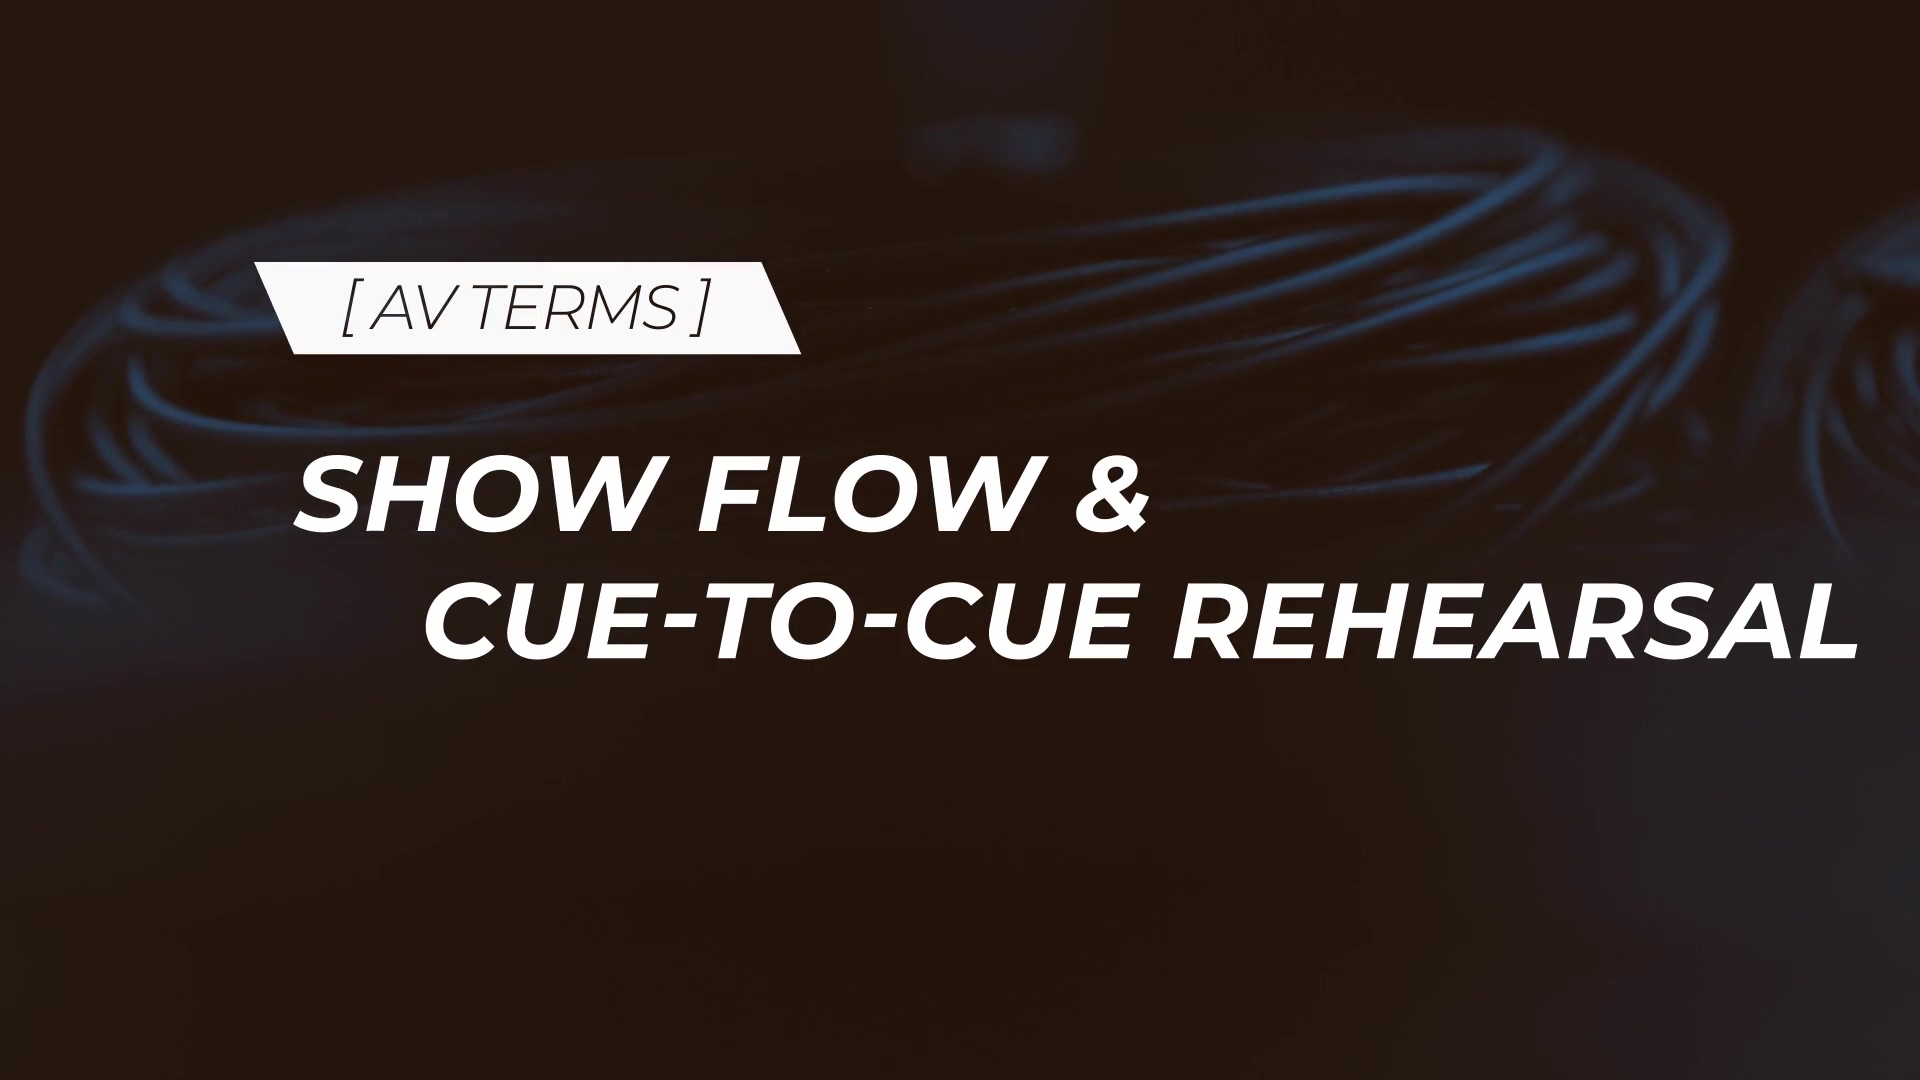 Show Flow and Cue to Cue